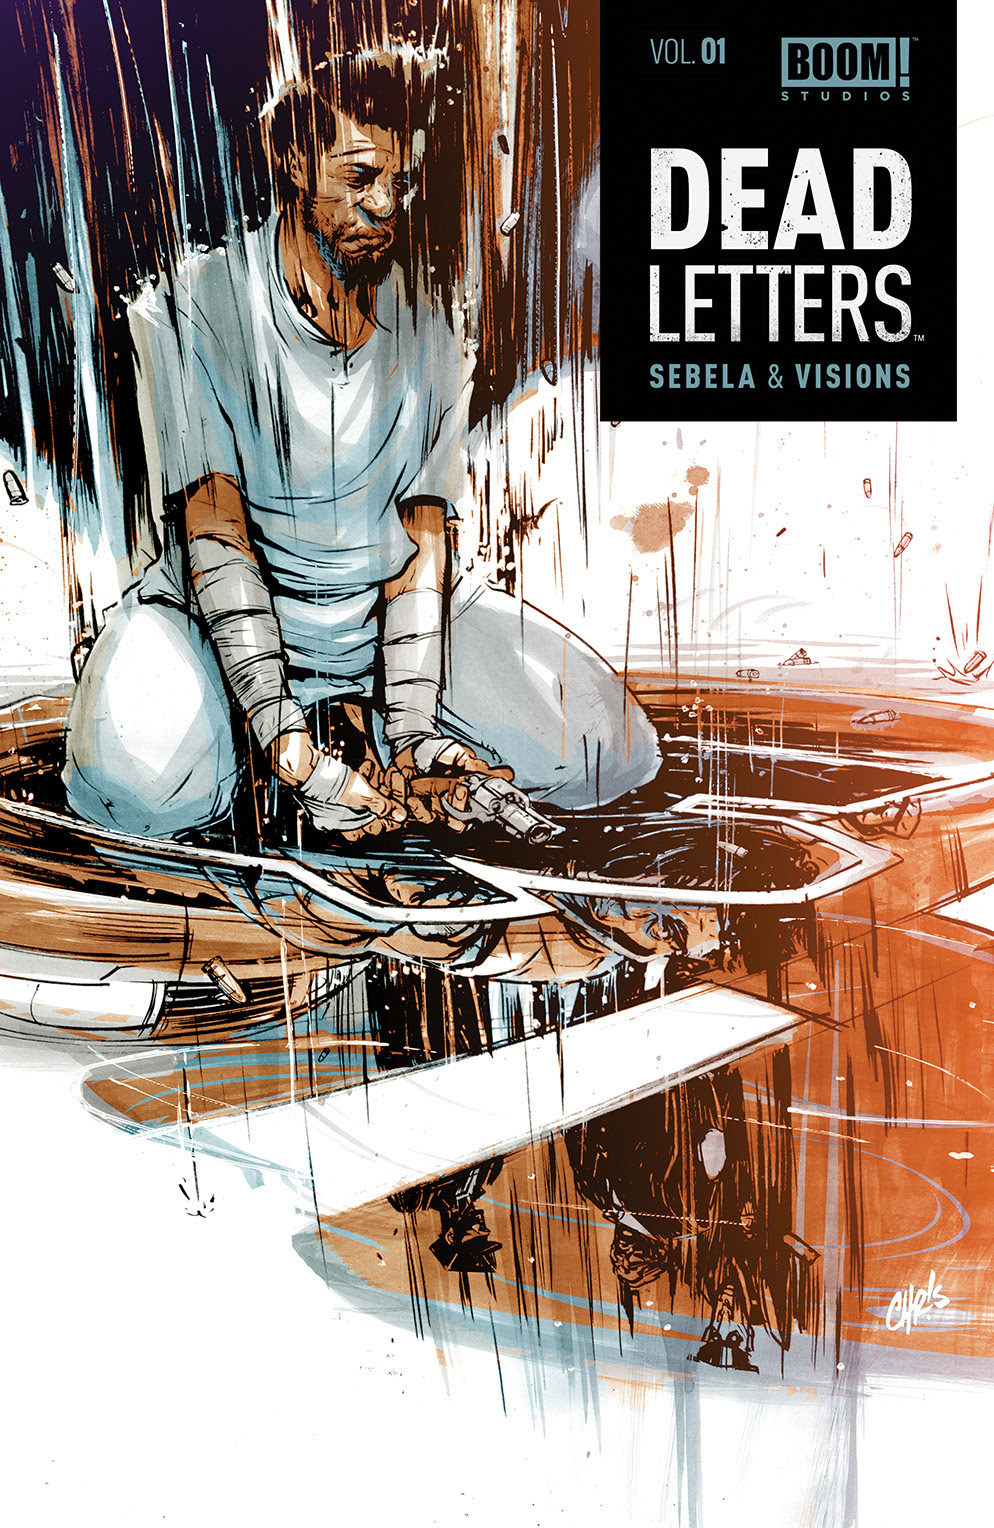 DEAD LETTERS VOL. 1 TP Cover by Chris Visions